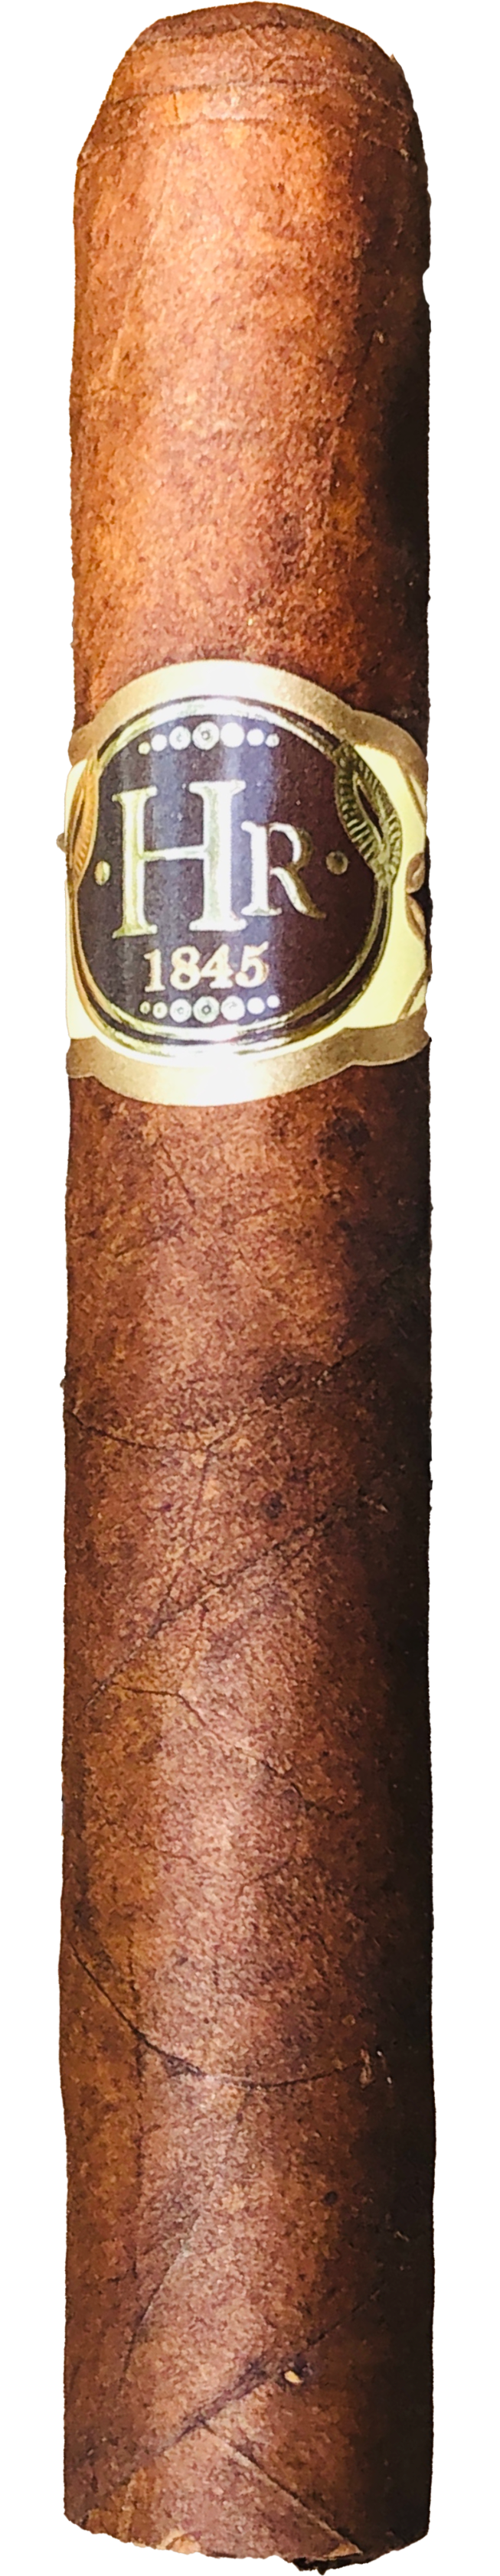 99Cigars-HR-Signature-Hermoso-2